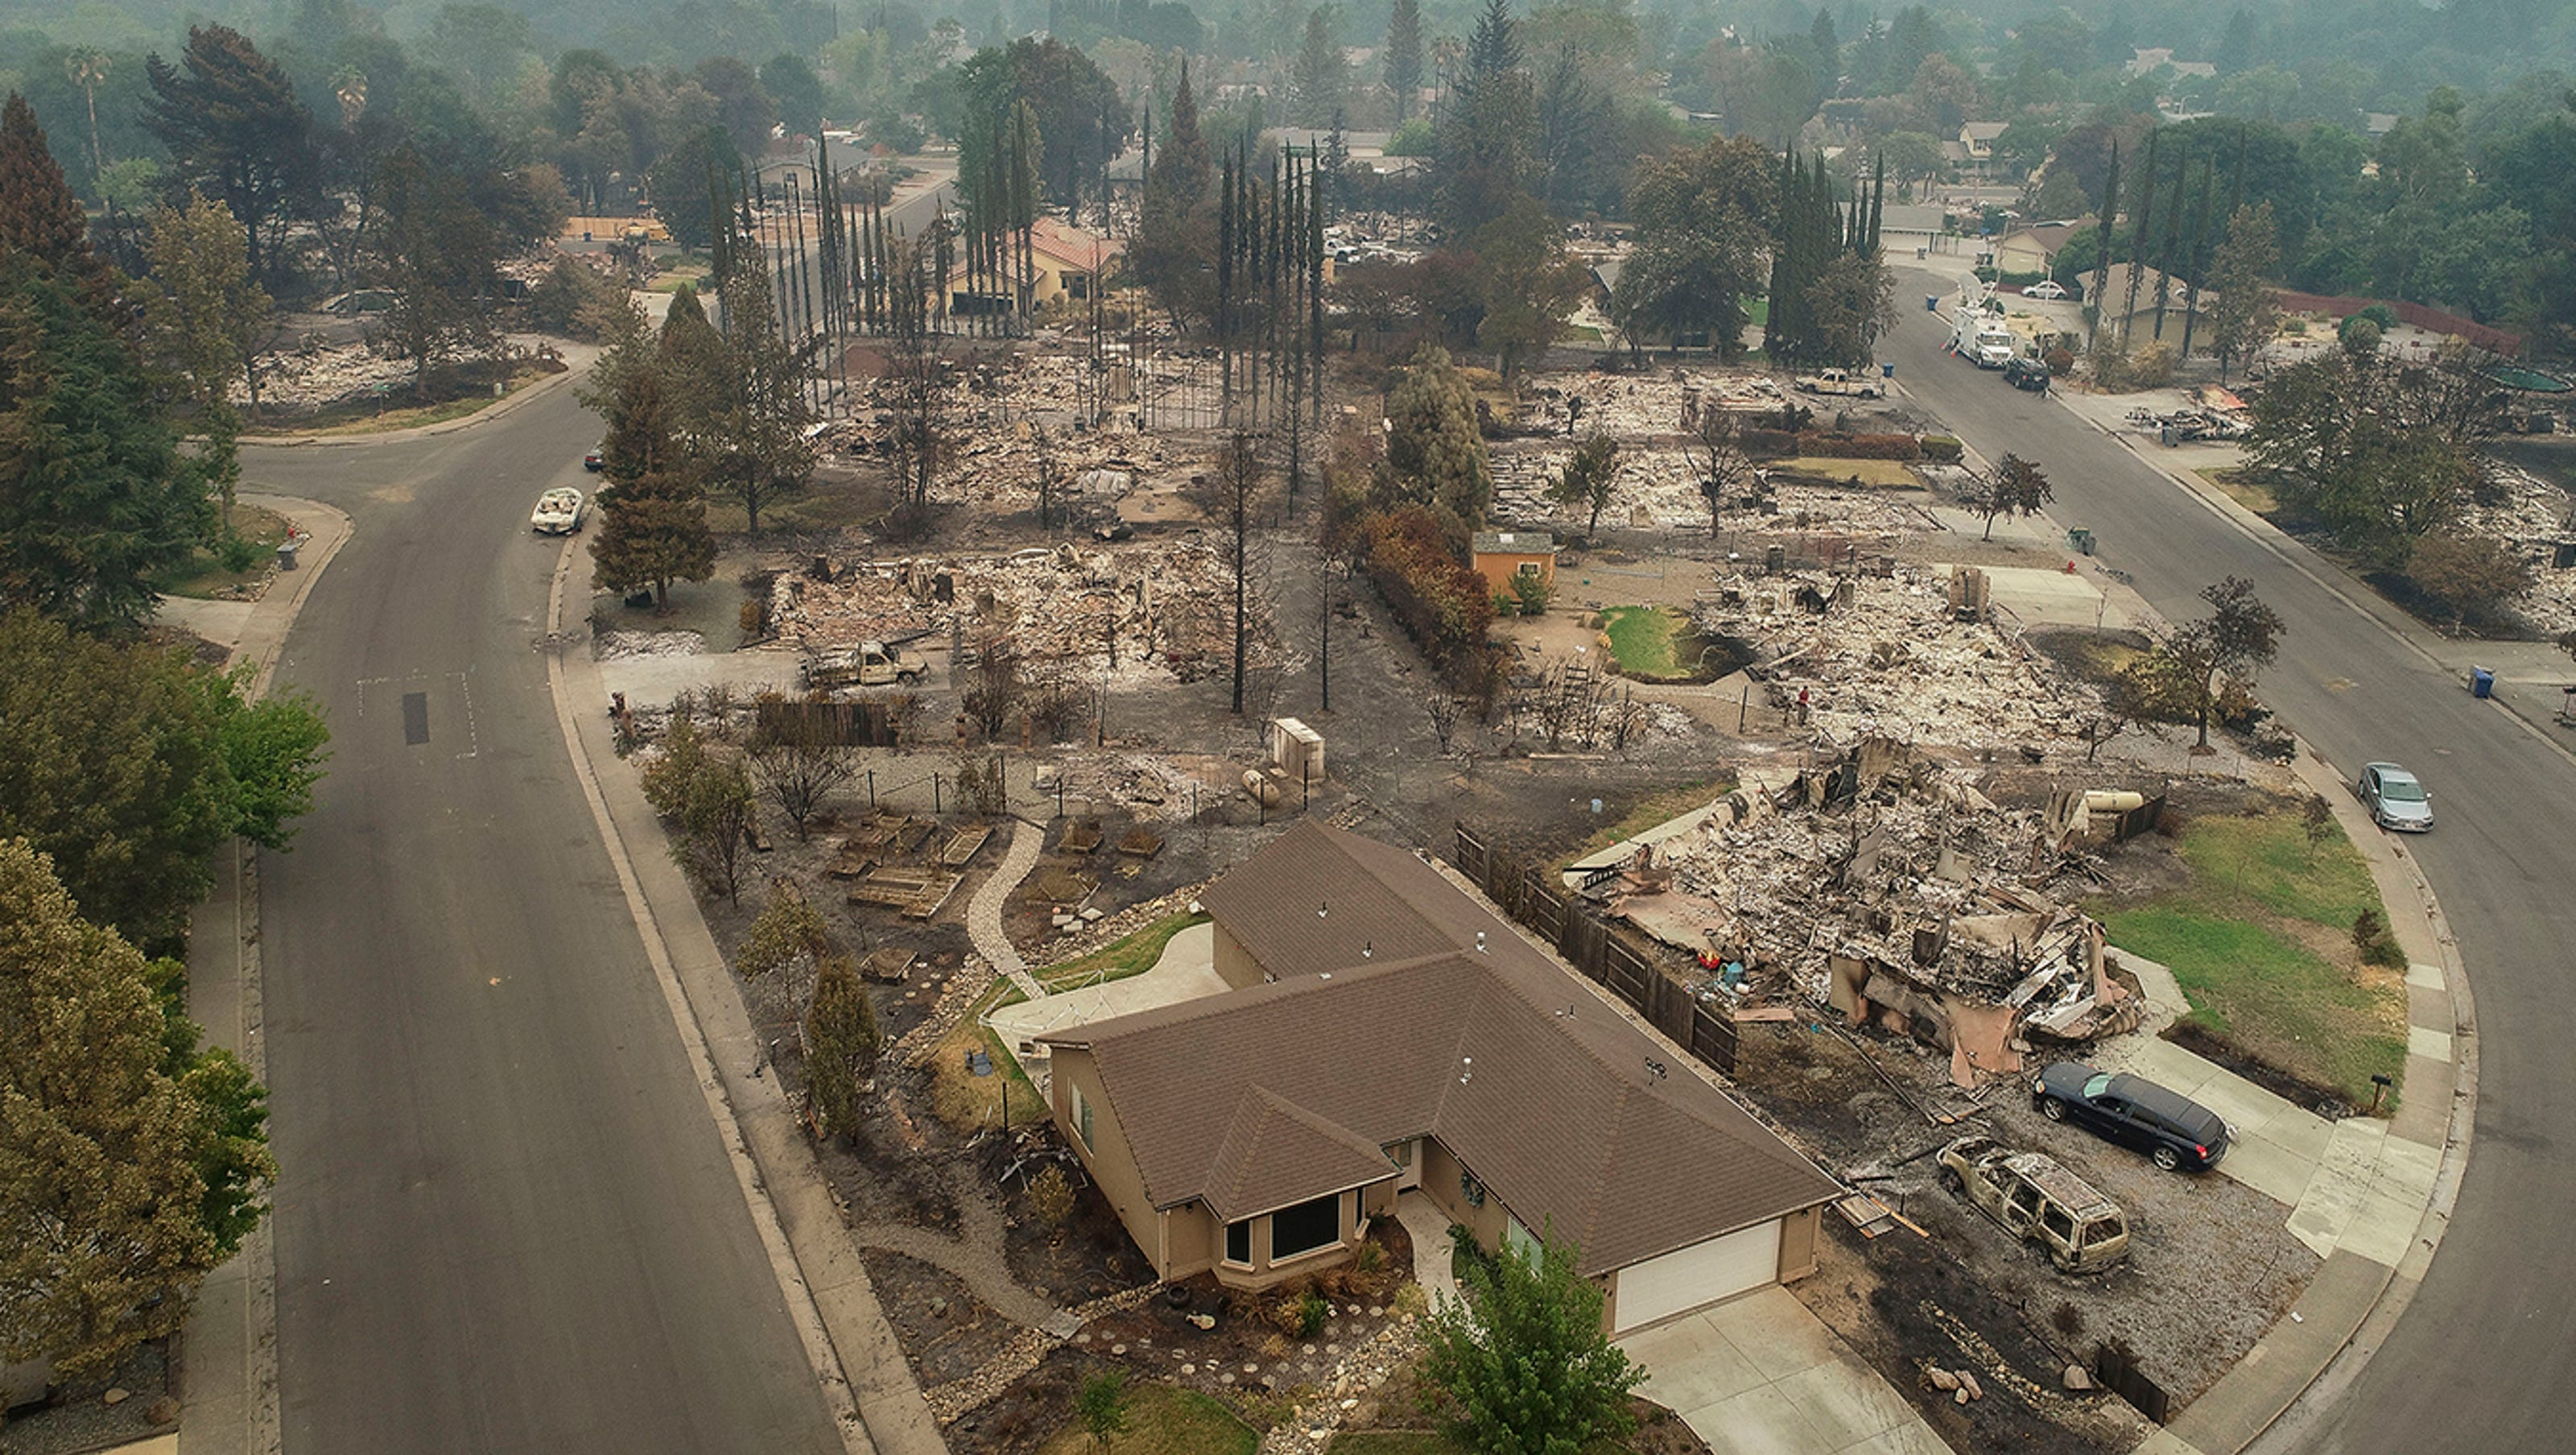 Six months later, Carr Fire survivors share tales of horror and hope